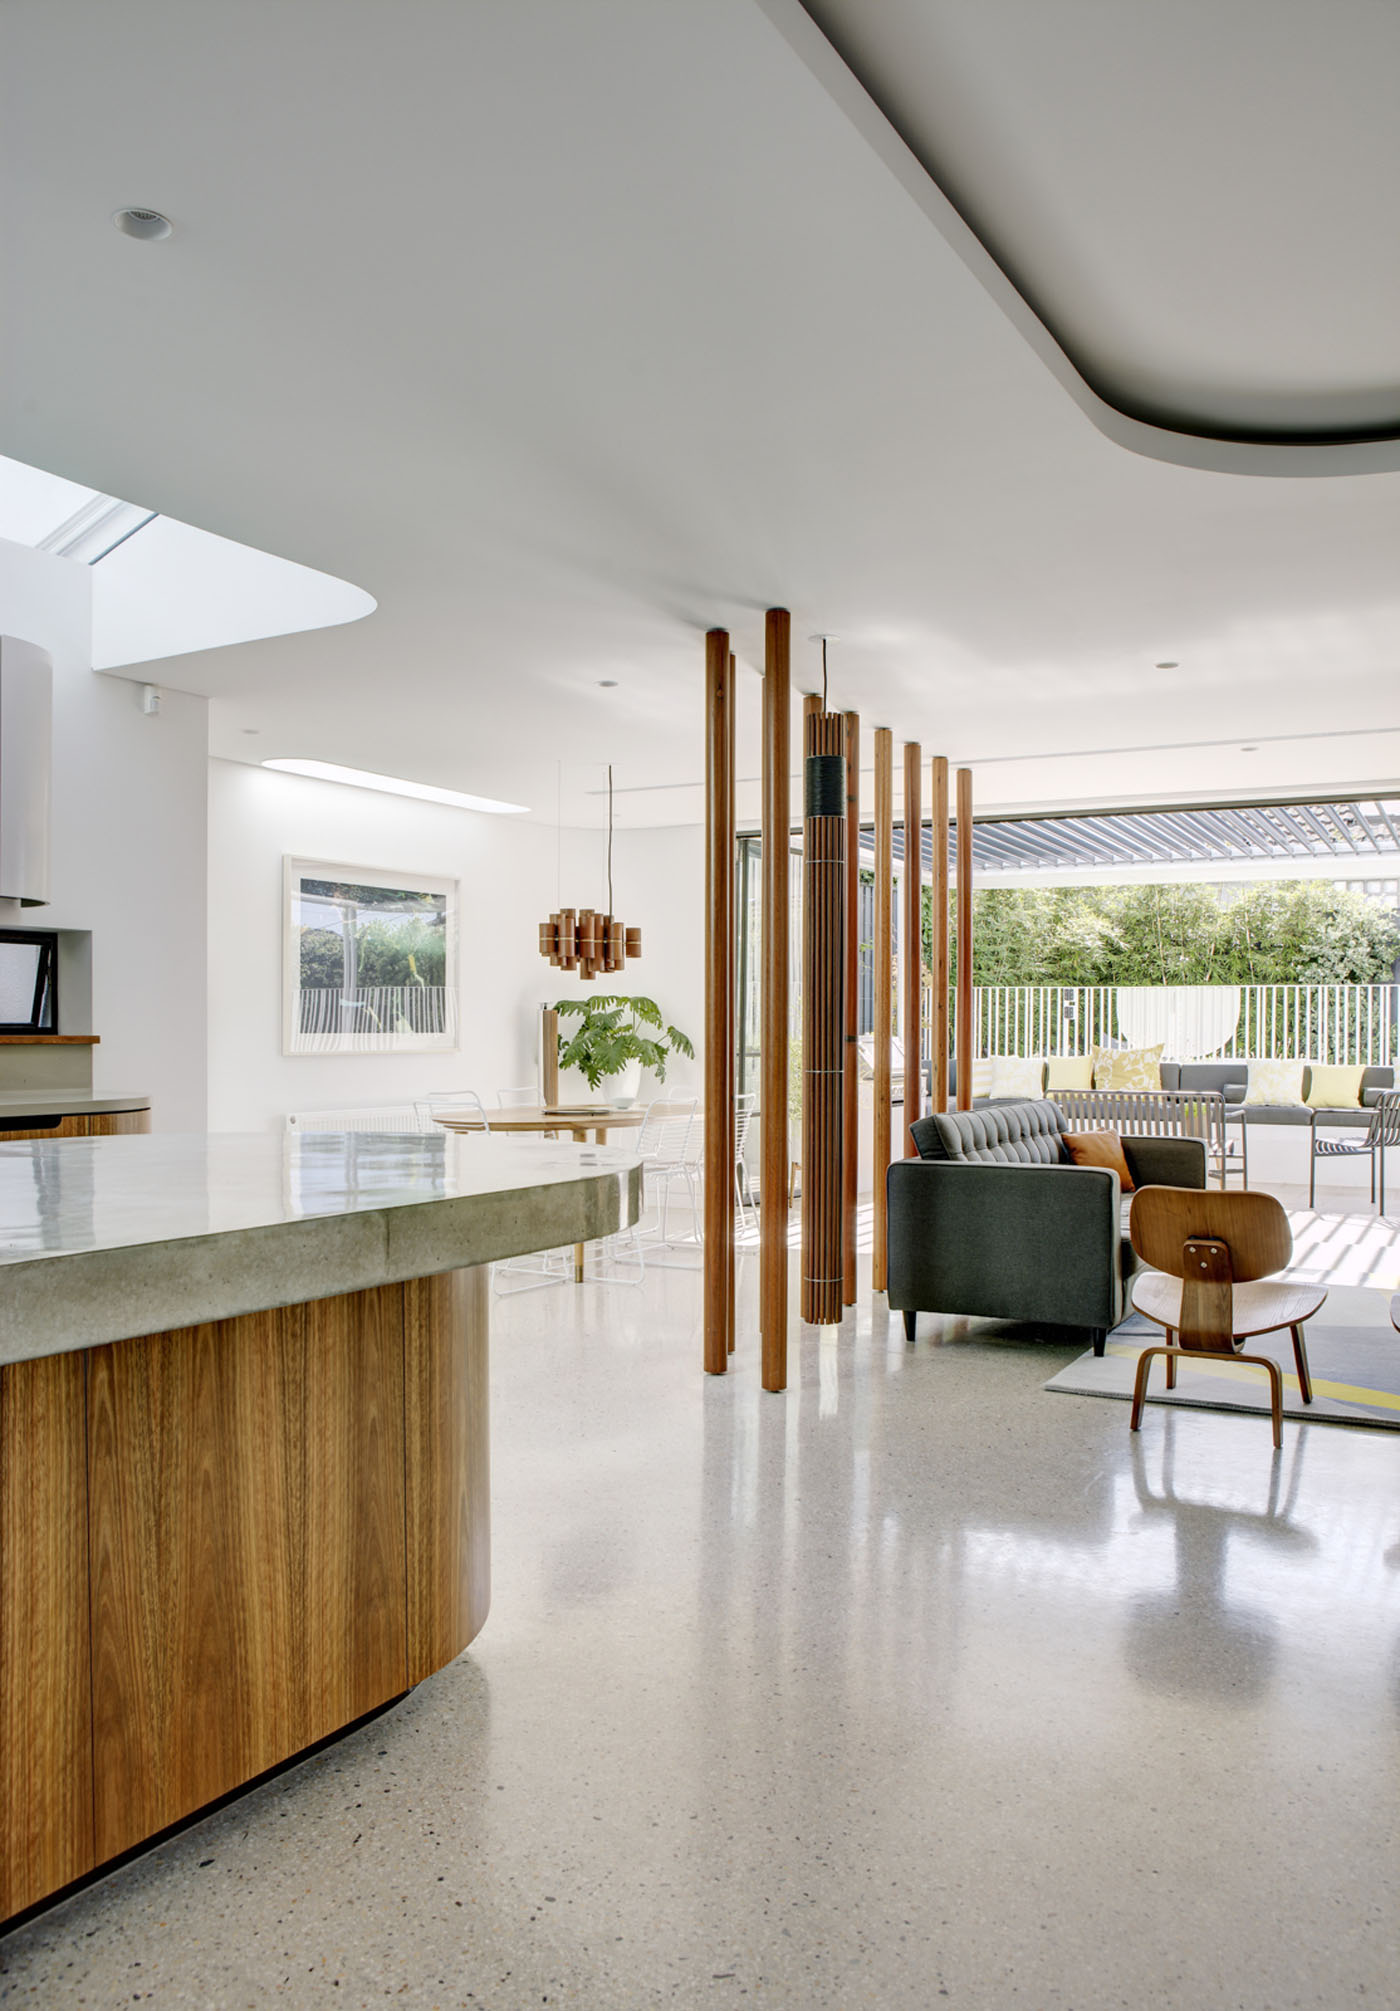 Conway Atkins House in Dover Heights by Sydney architect Sam Crawford Architect. Polished concrete is used throughout the living areas and kitchen bench.